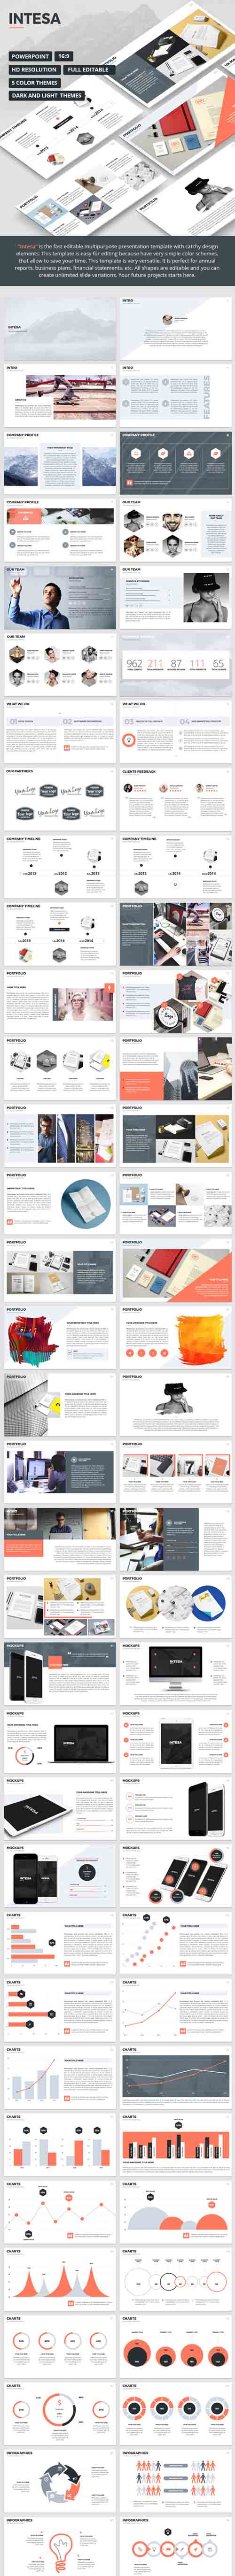 Intesa - PowerPoint Template 15331363